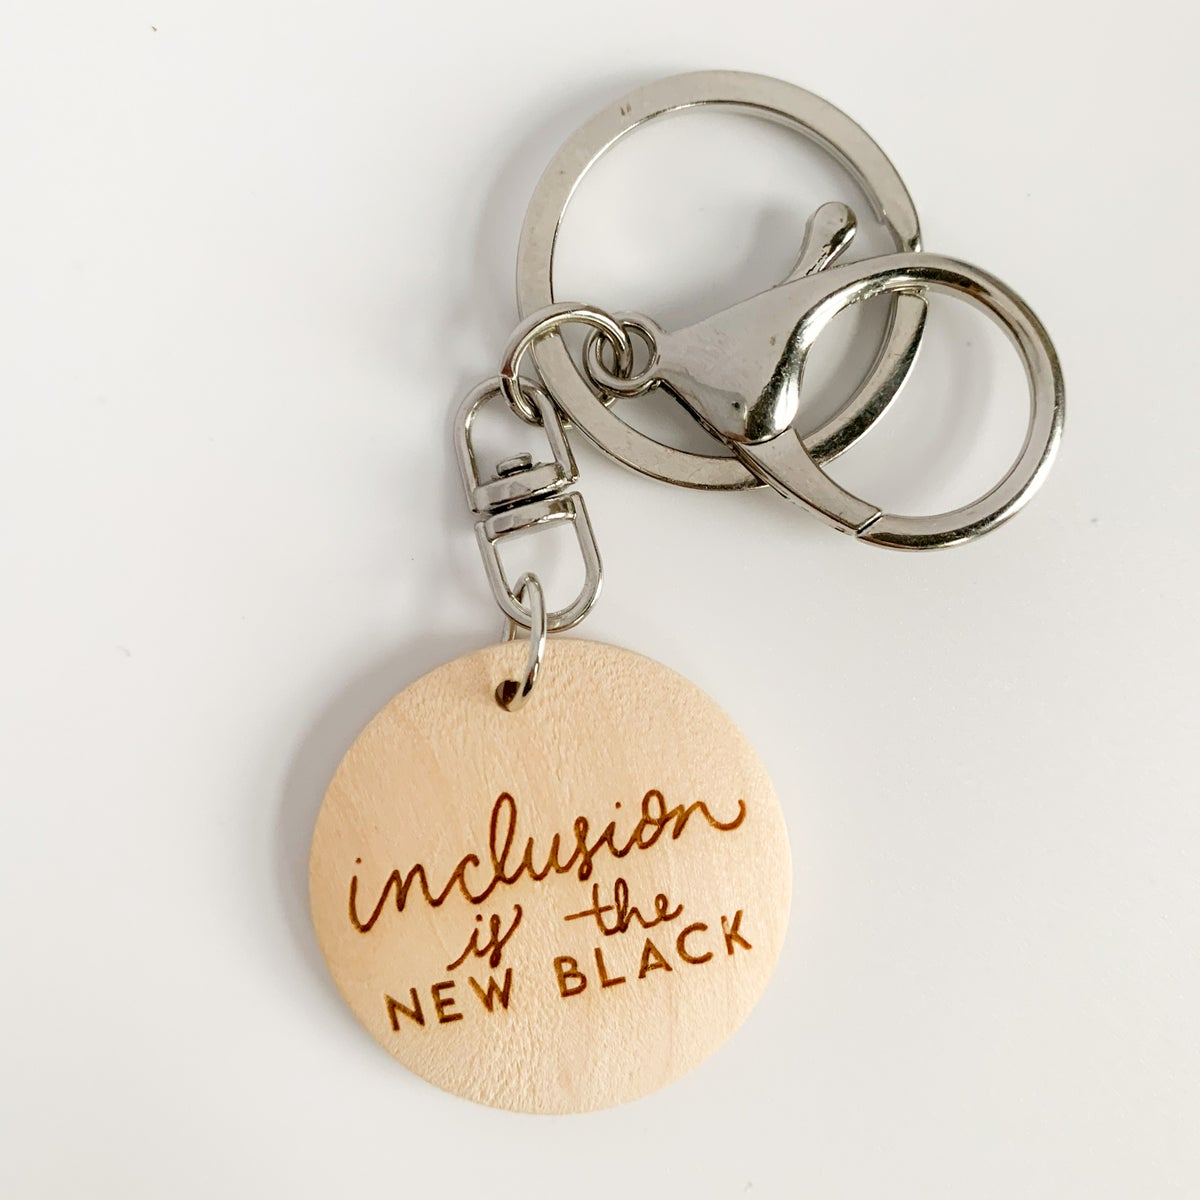 Image of Inclusion is the new black laser engraved keychain